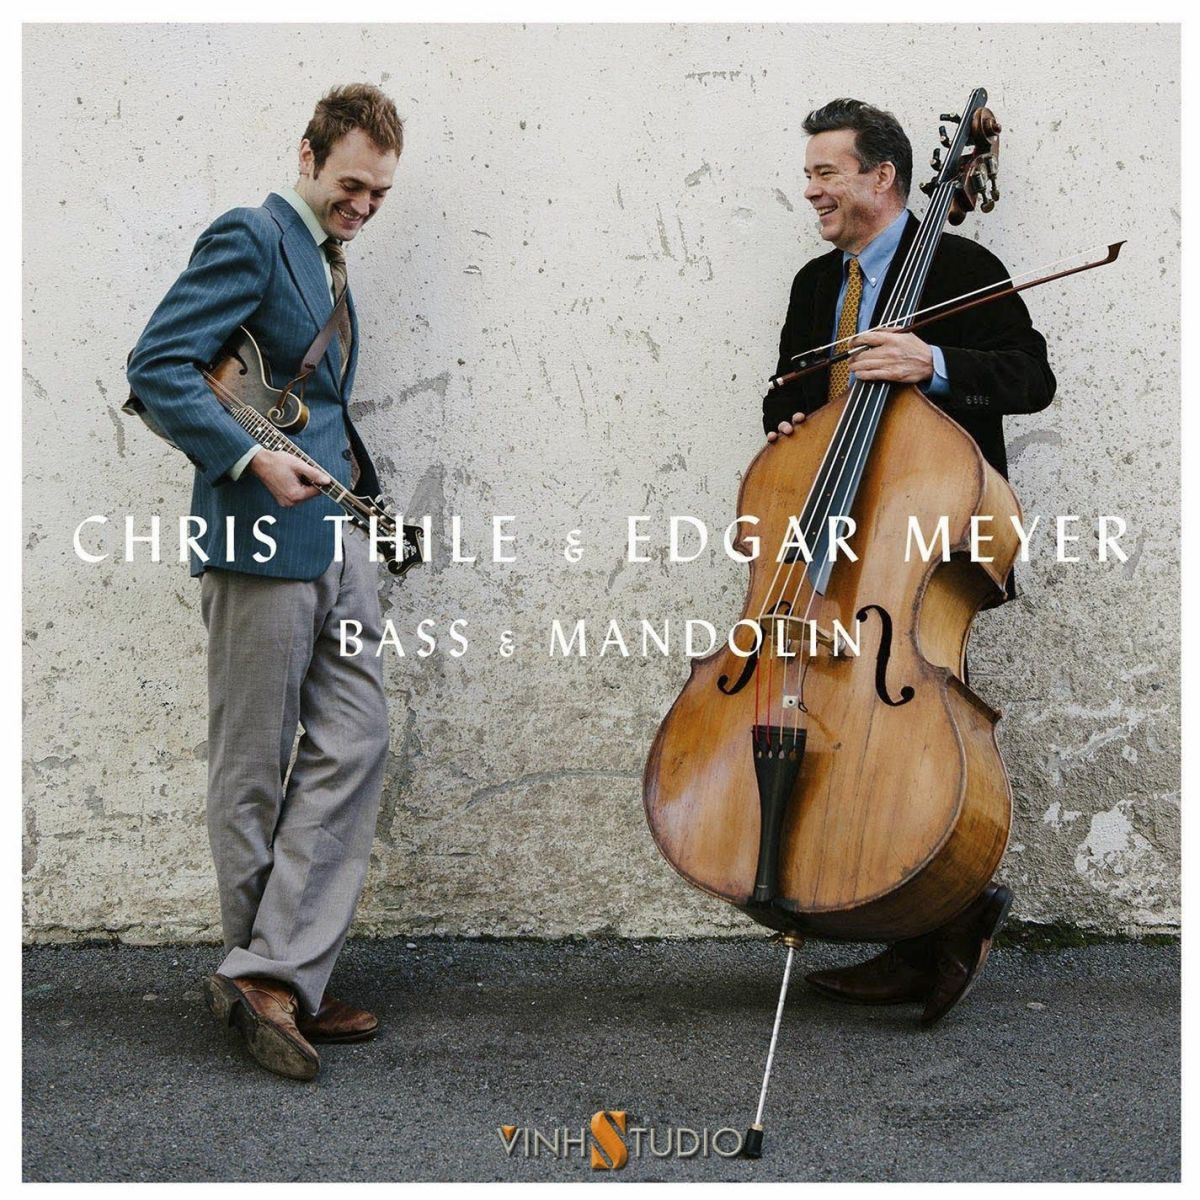 Chris Thile - Bass & Mandolin